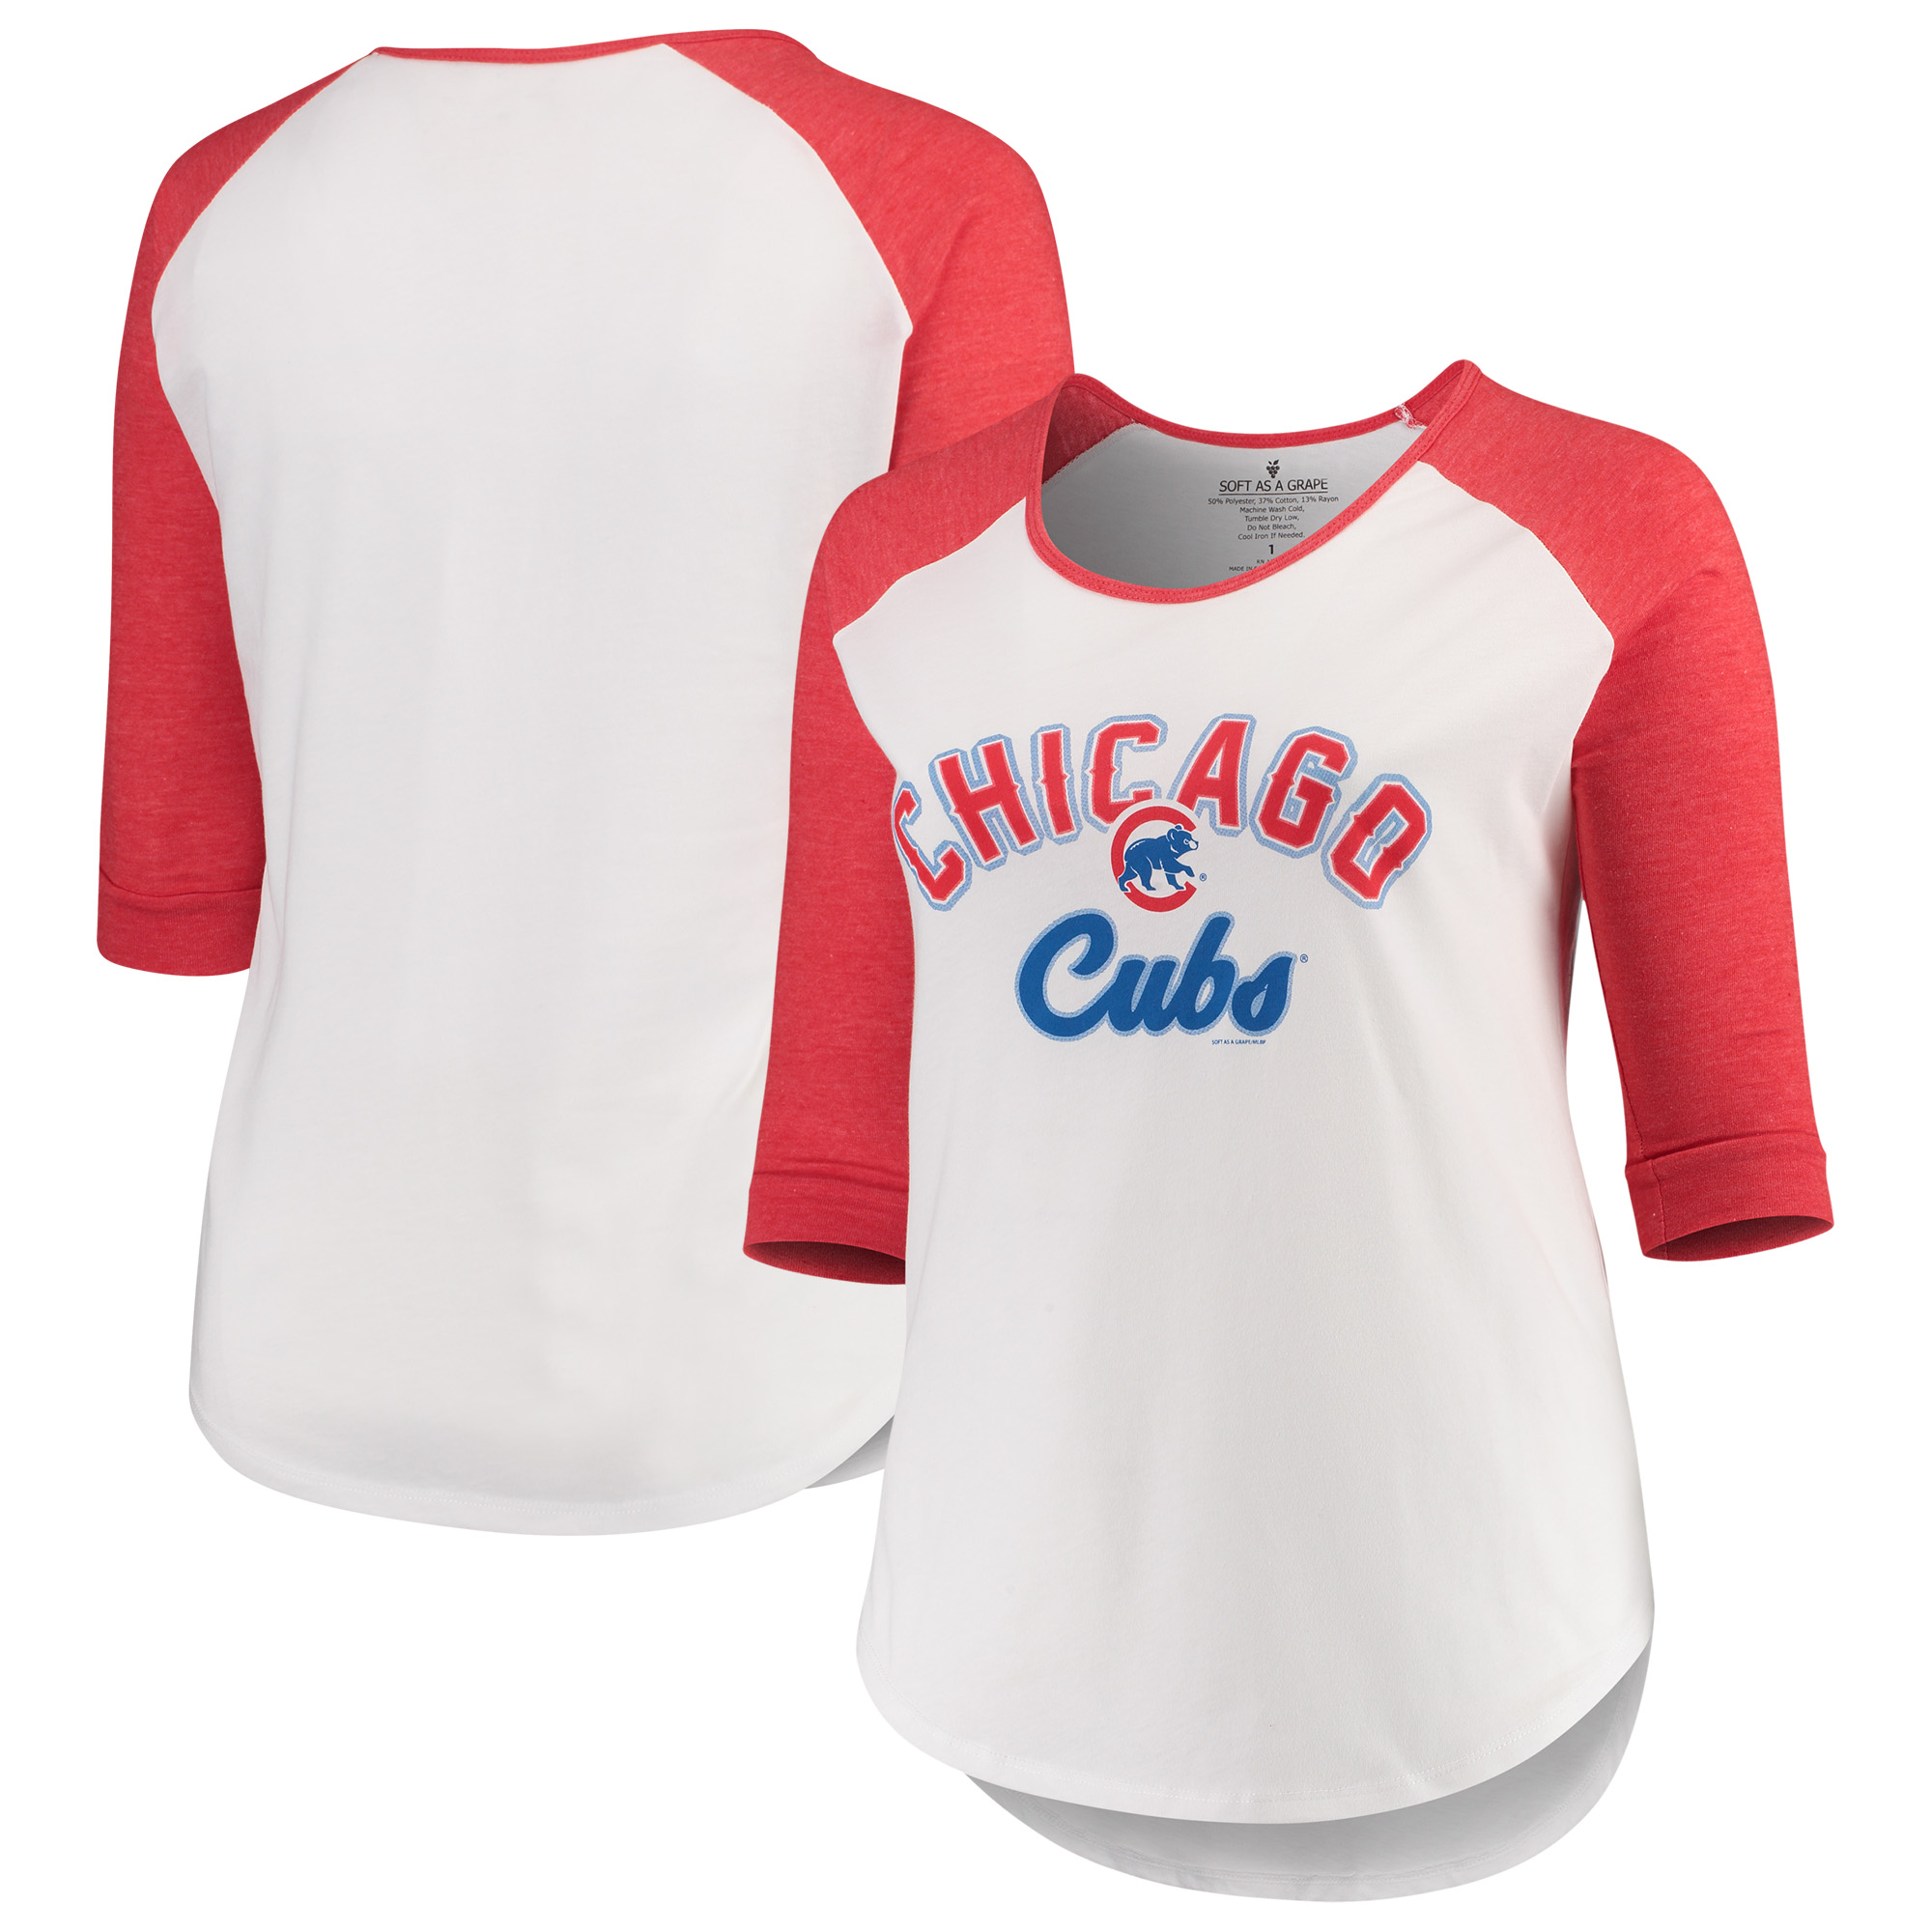 Chicago Cubs Soft as a Grape Women's Plus Size Curvy Tri-Blend Raglan 3/4-Sleeve Baseball T-Shirt - Heathered White/Red